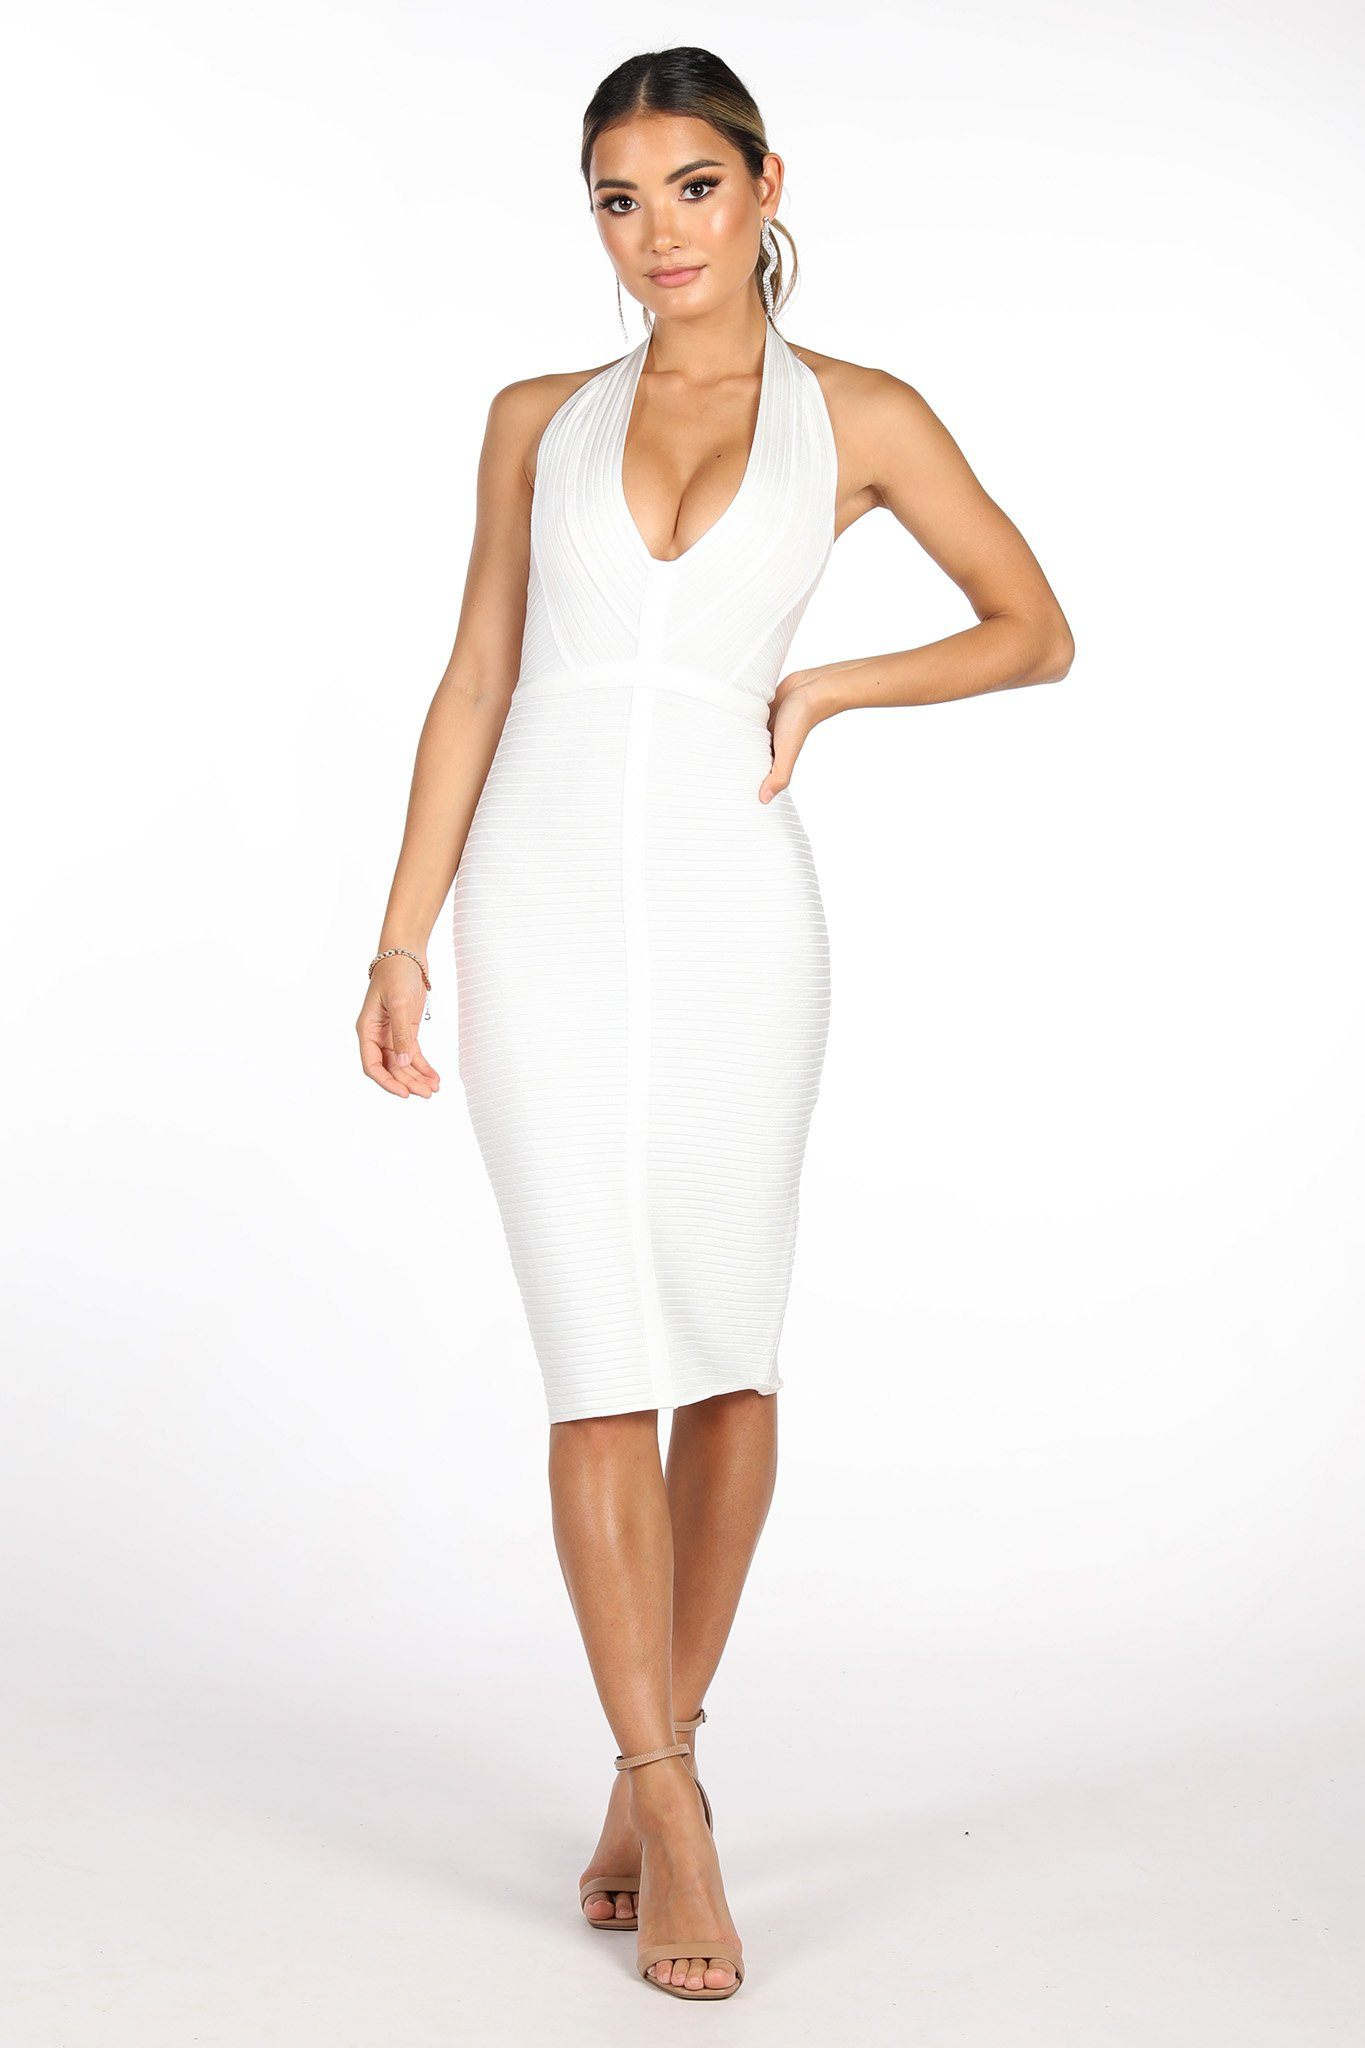 White Midi Bandage Dress featuring Plunging Halter Neckline, Open back Design and Body-skimming Fit